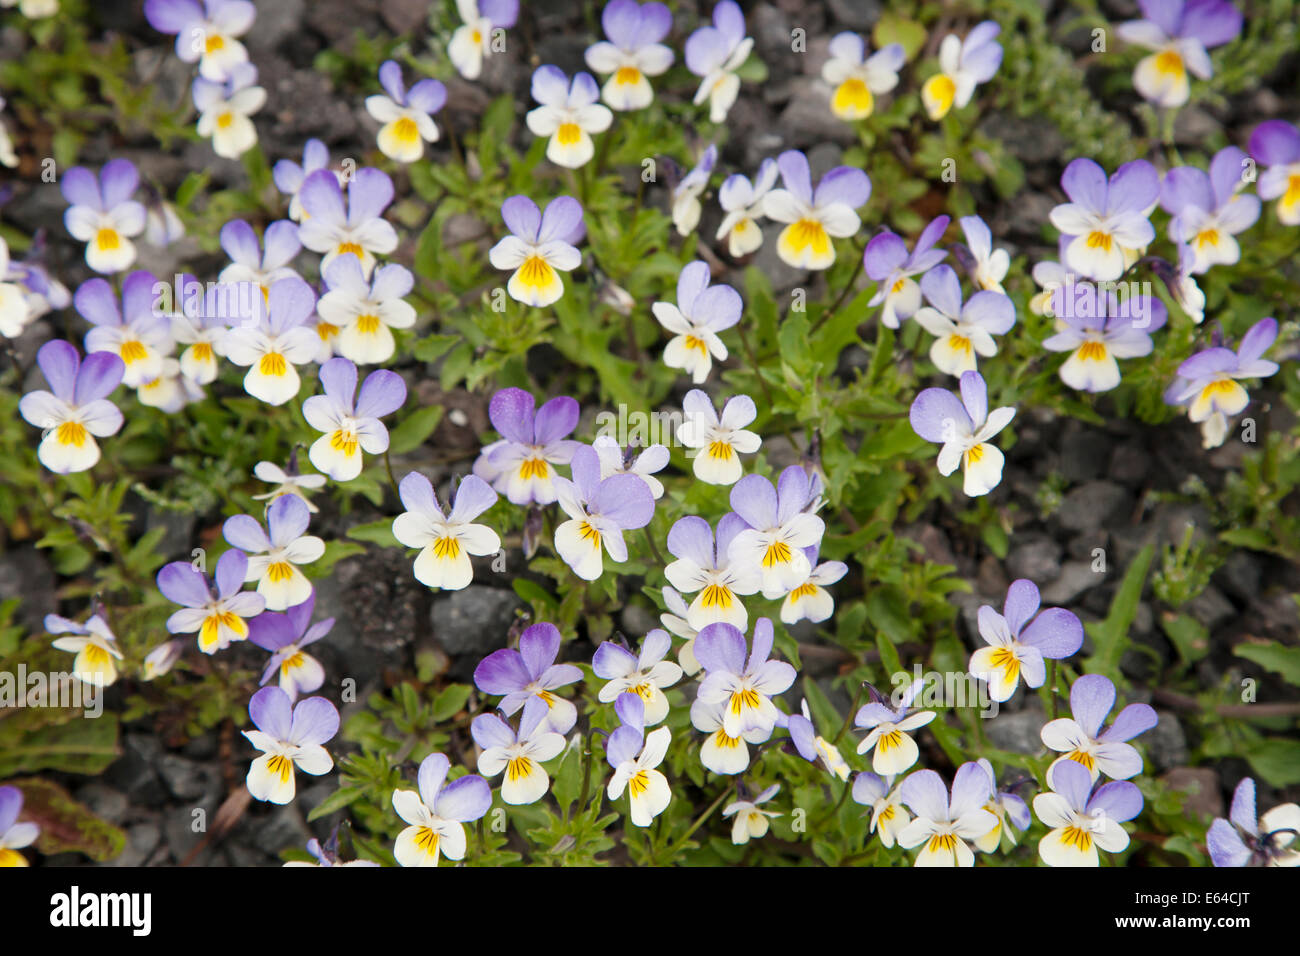 Wild Pansy Viola tricolor Iceland PL002234 - Stock Image